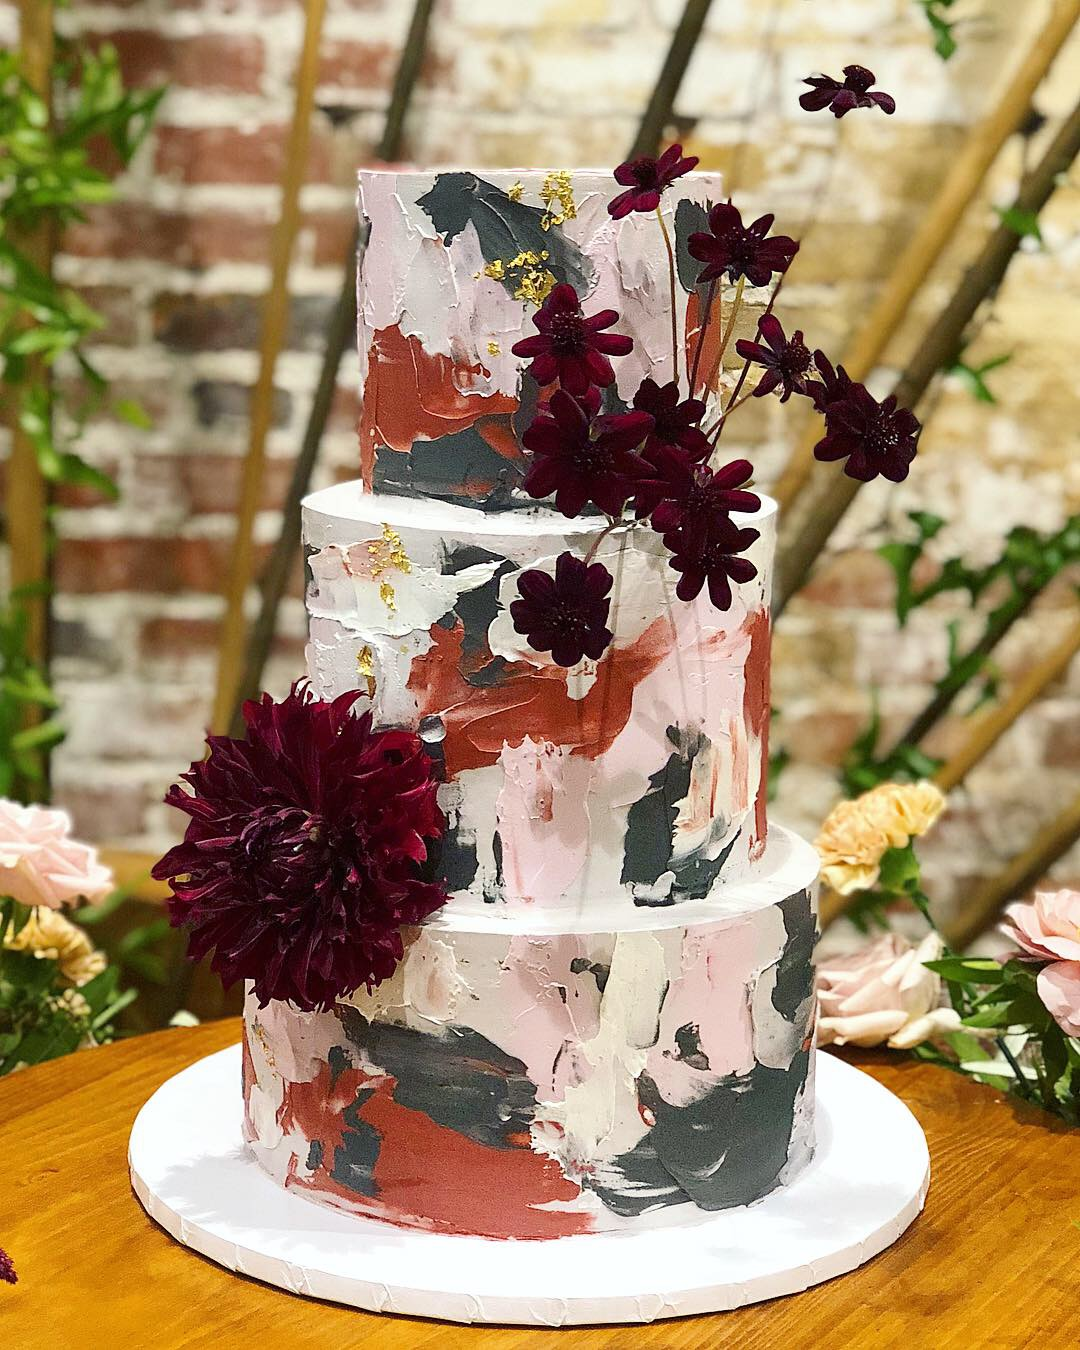 Spackled Wedding Cake